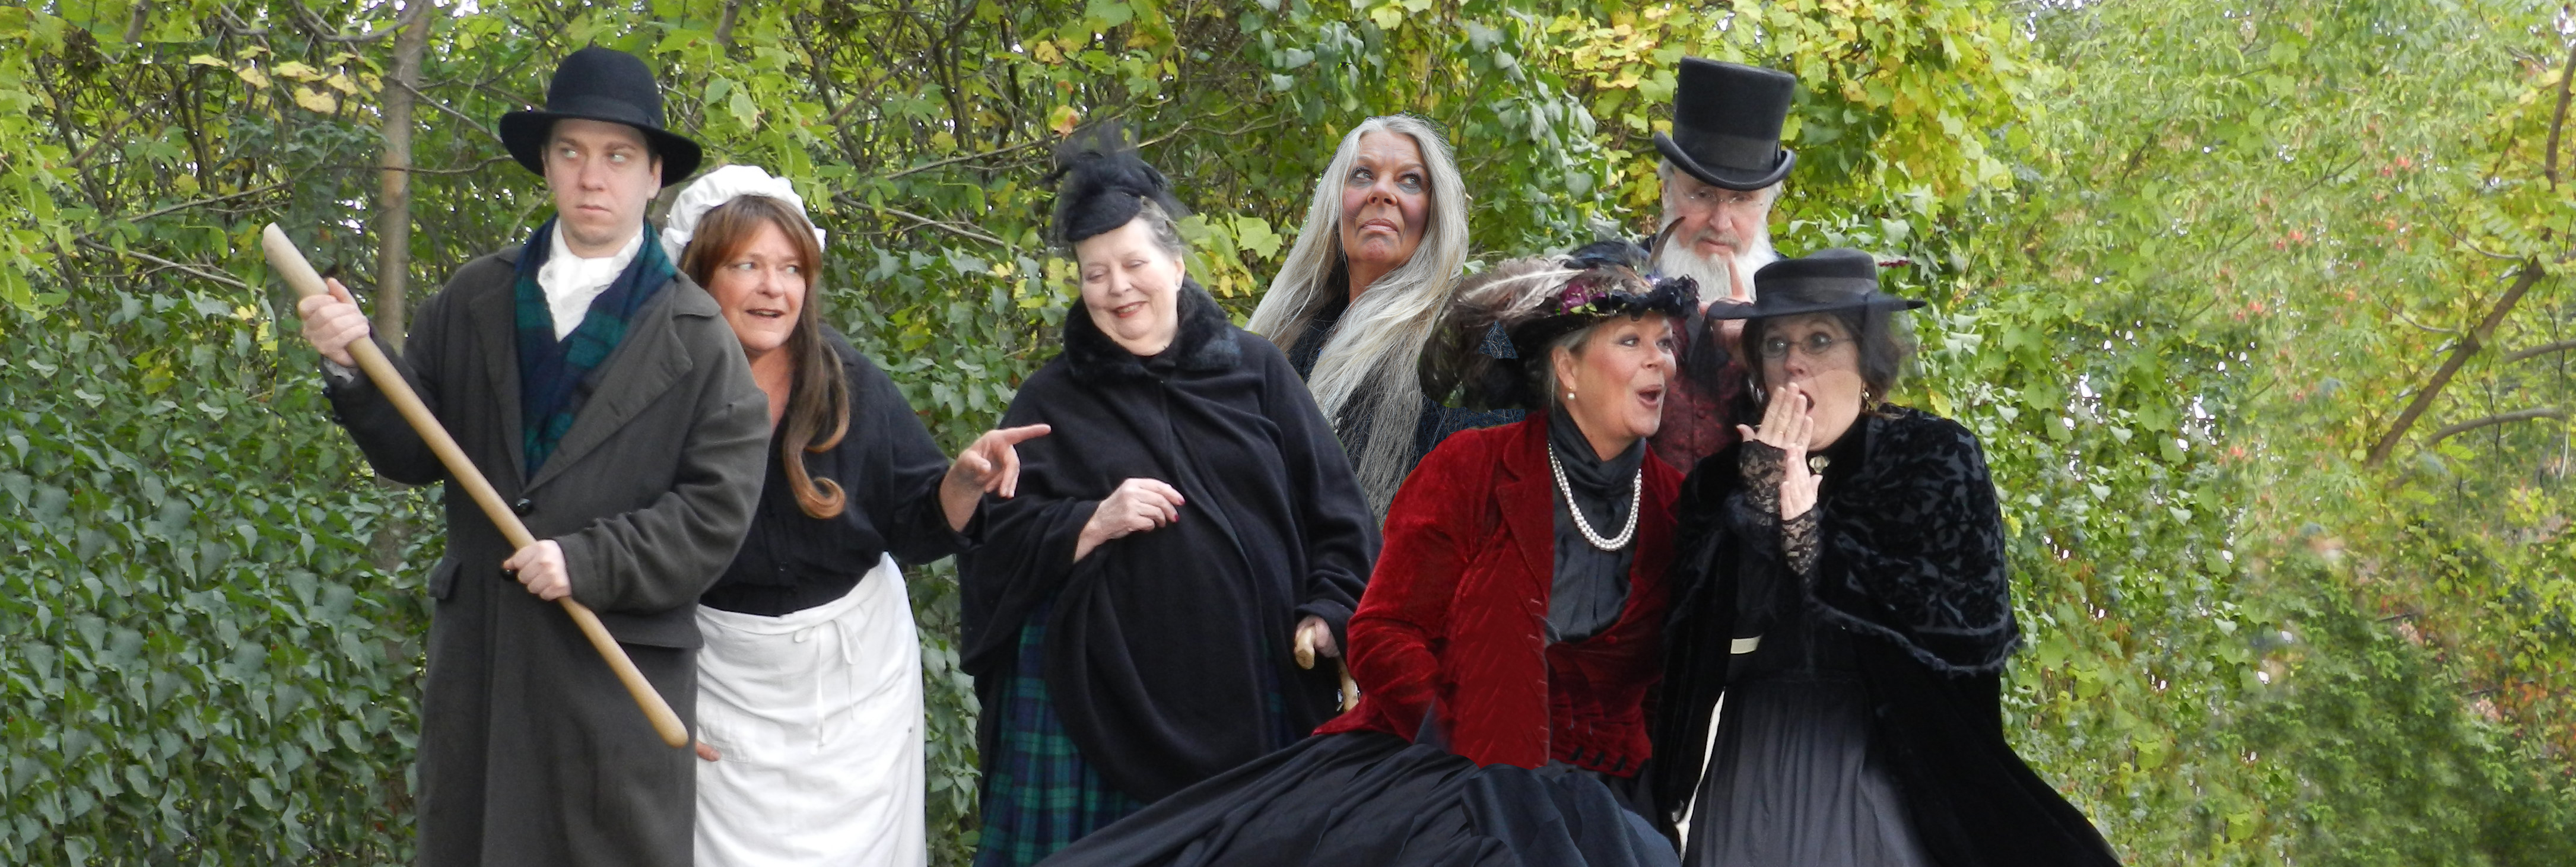 People in Costumes with Trees in Background